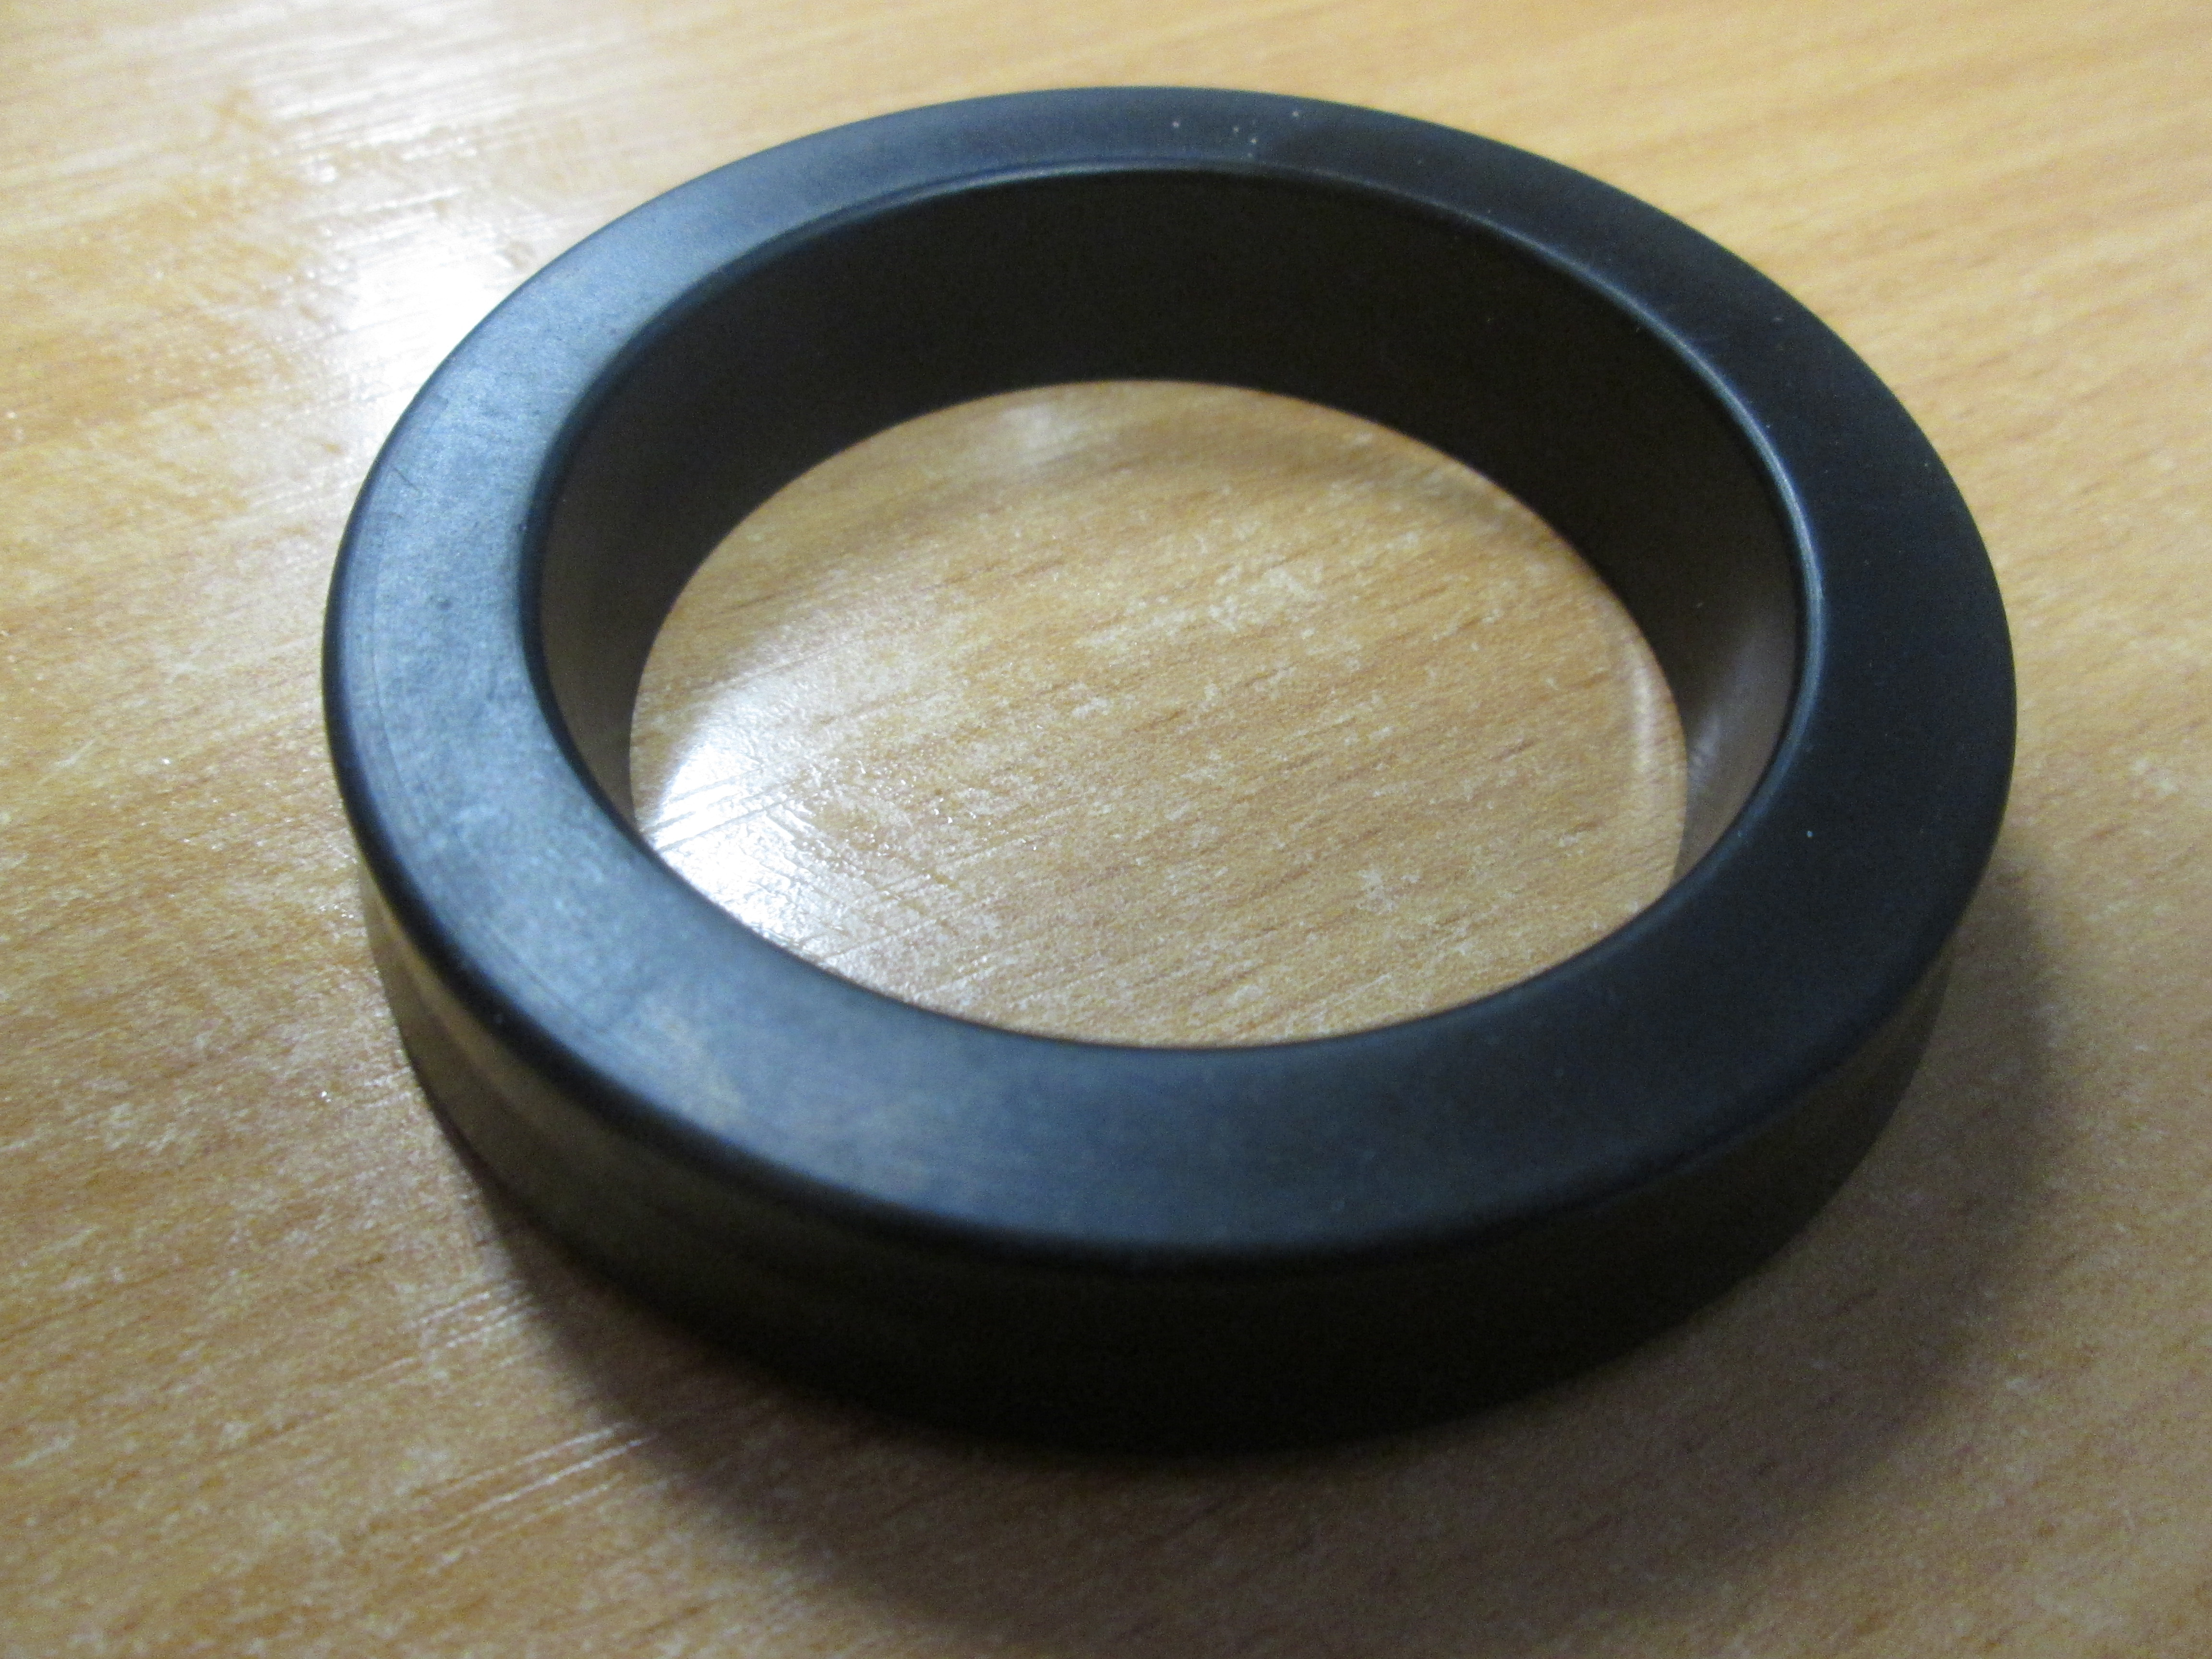 External Distributor Seal, Imperial 1.3/4inch x 2.3/8inch x 3/8